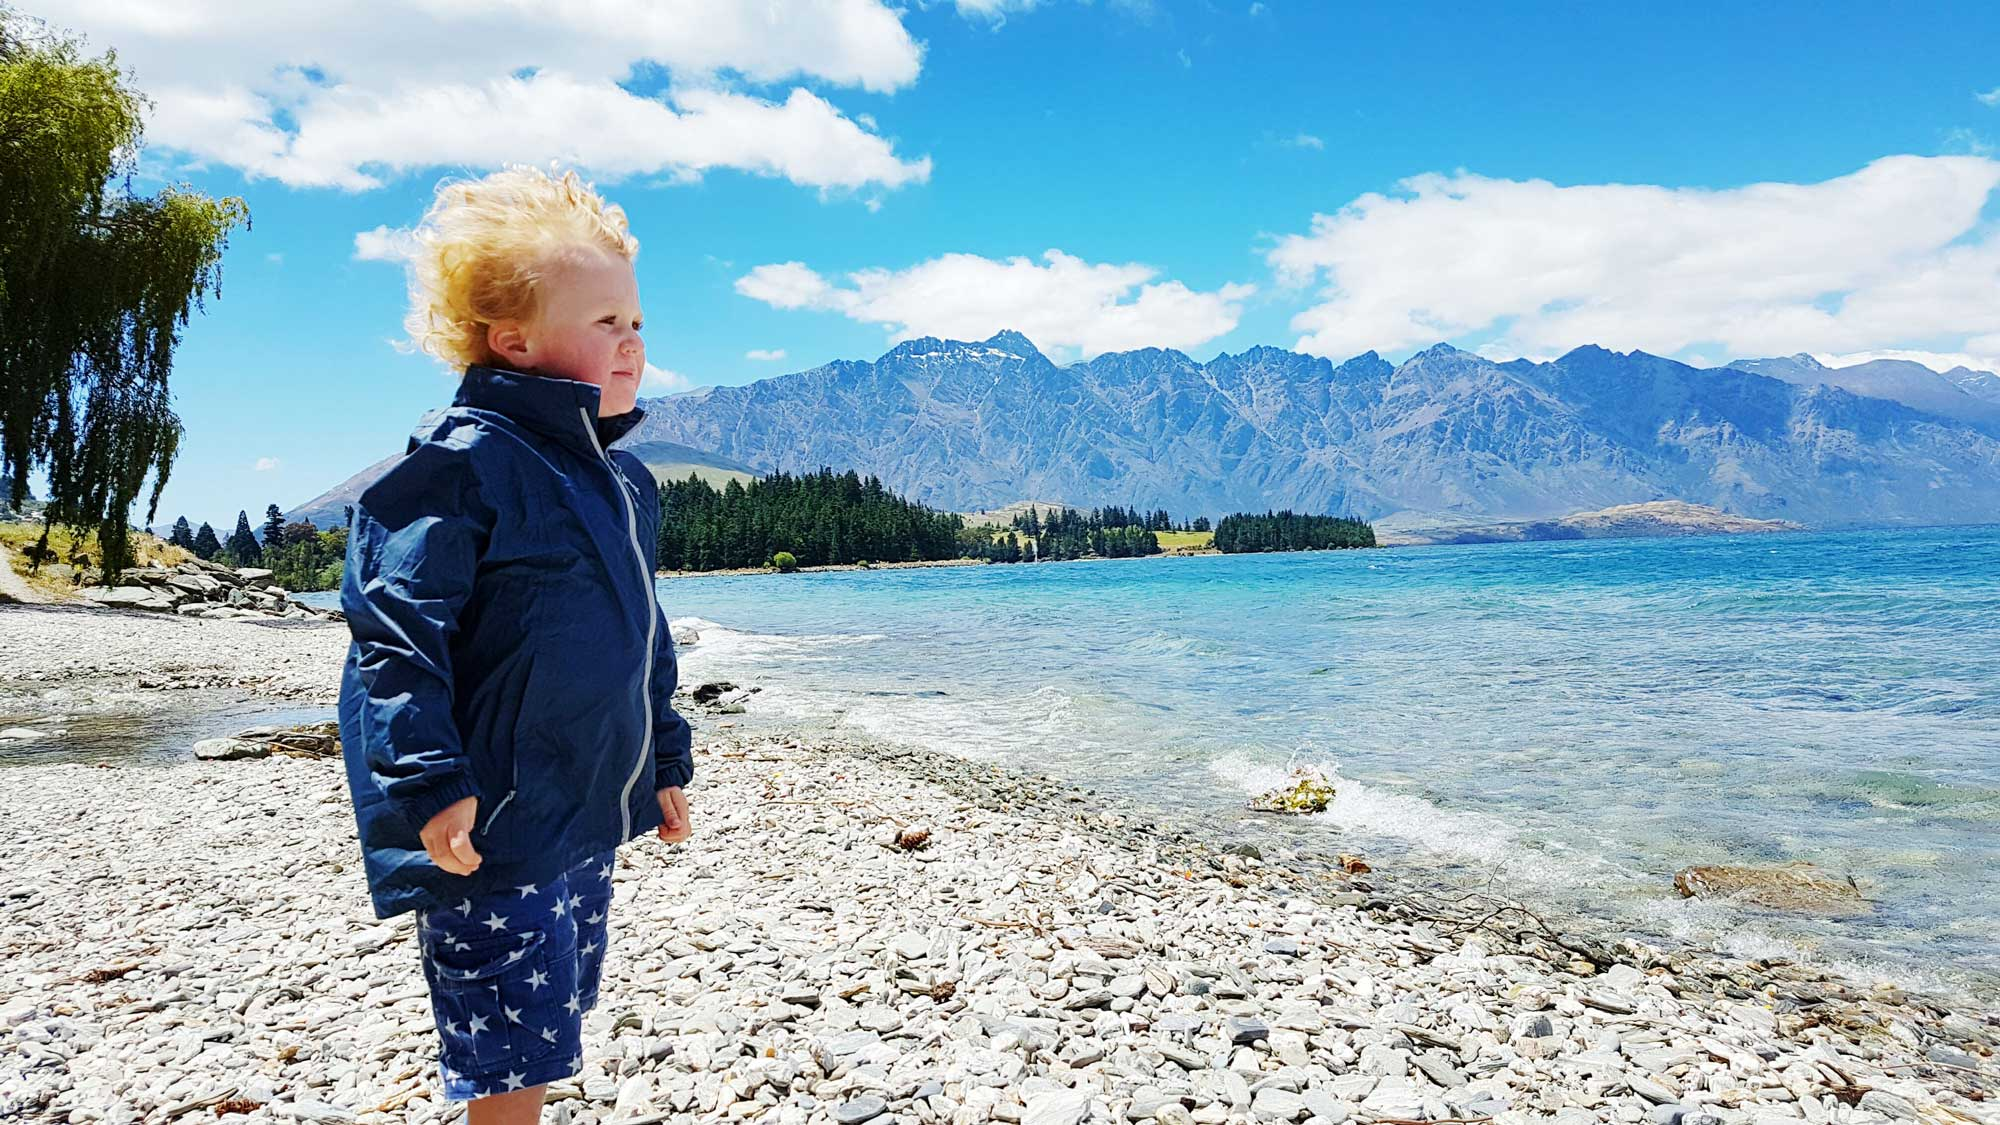 Explore Queenstown Like a Local